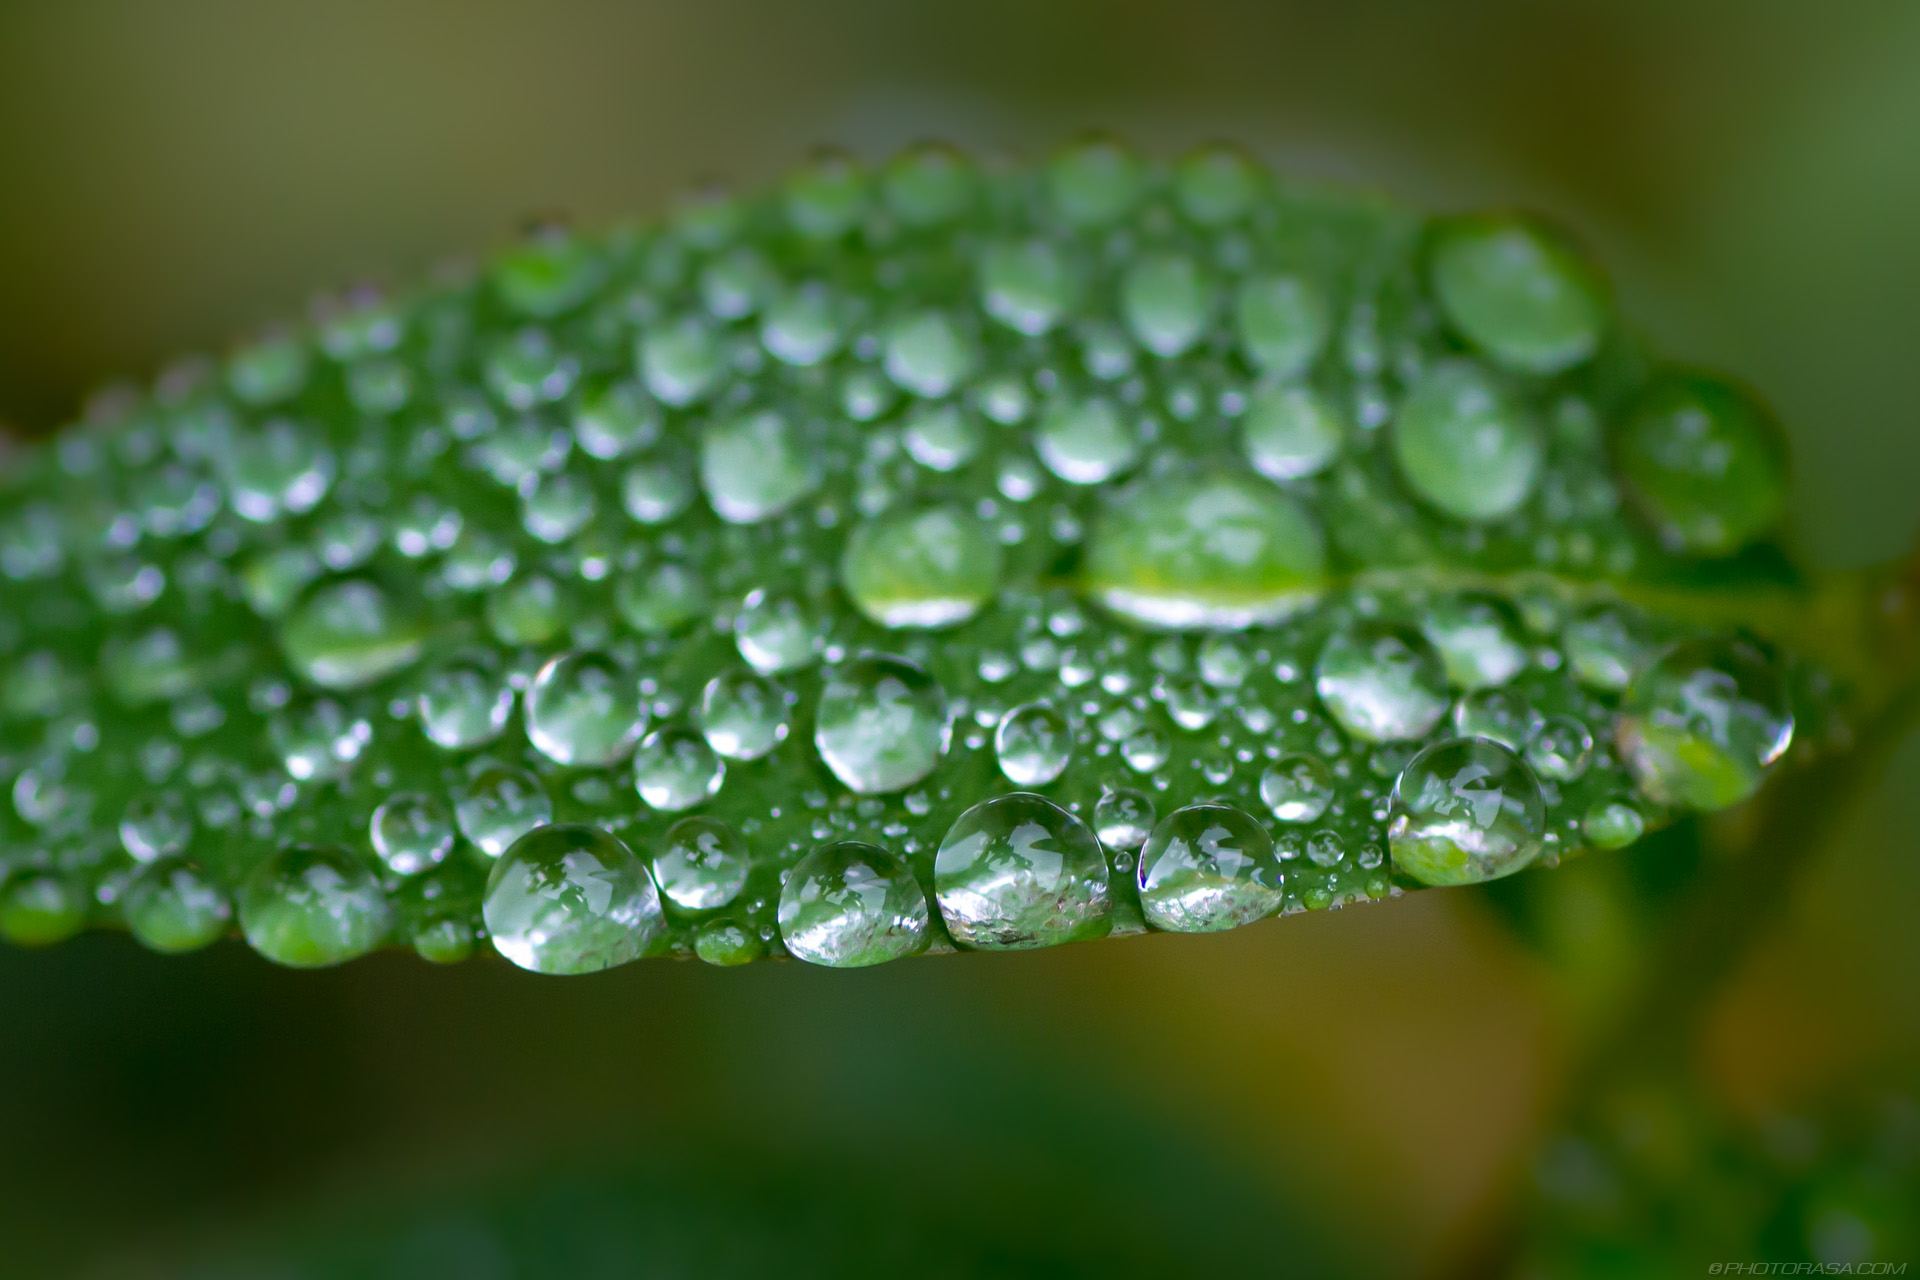 https://photorasa.com/dewdrops-tiny-leaves/loads-of-tiny-water-droplets-on-leaf/